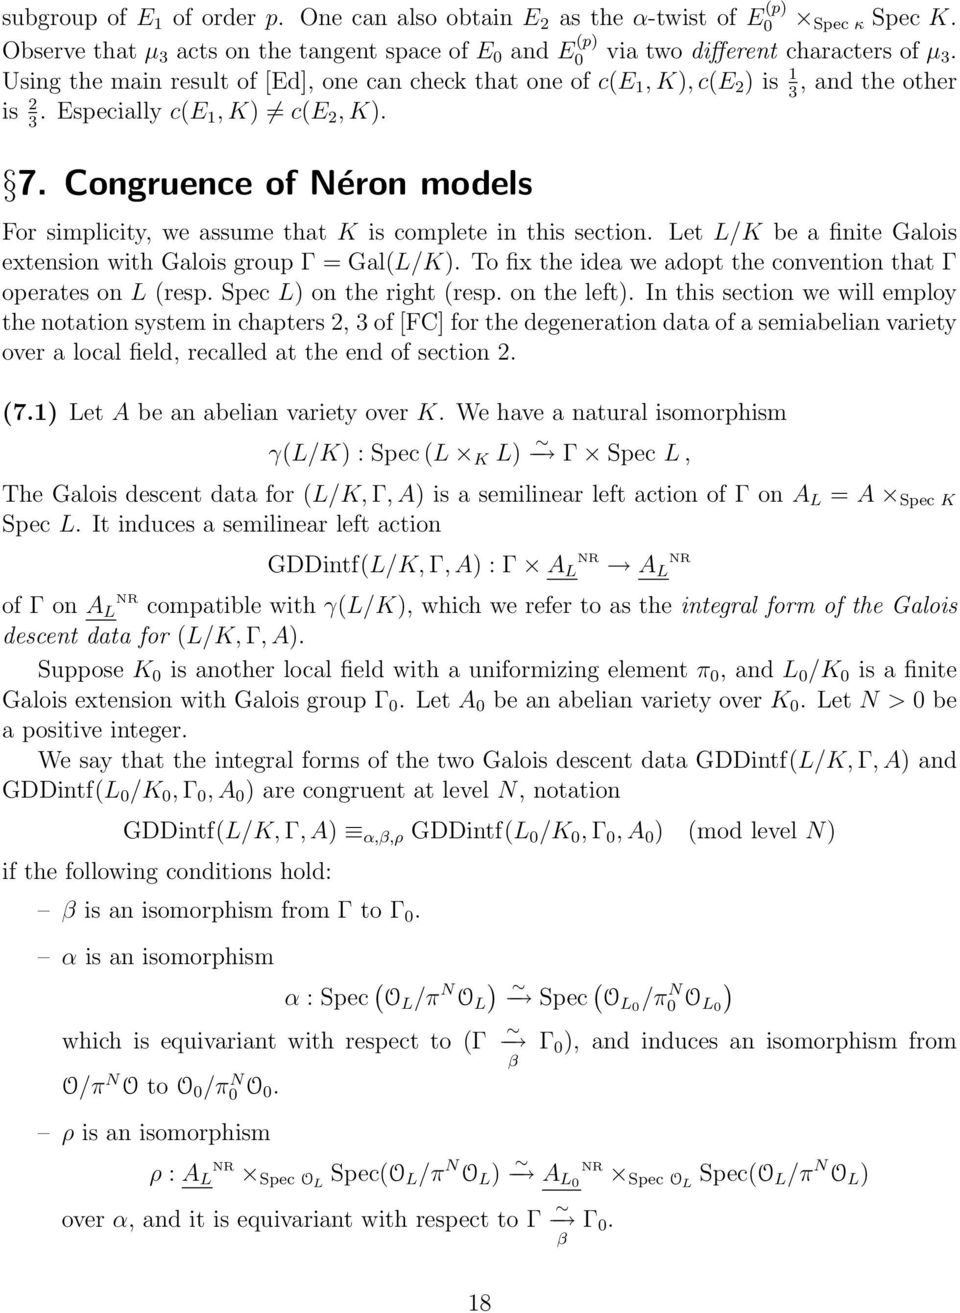 Congruence of Néron models For simplicity, we assume that K is complete in this section. Let L/K be a finite Galois extension with Galois group Γ = Gal(L/K).